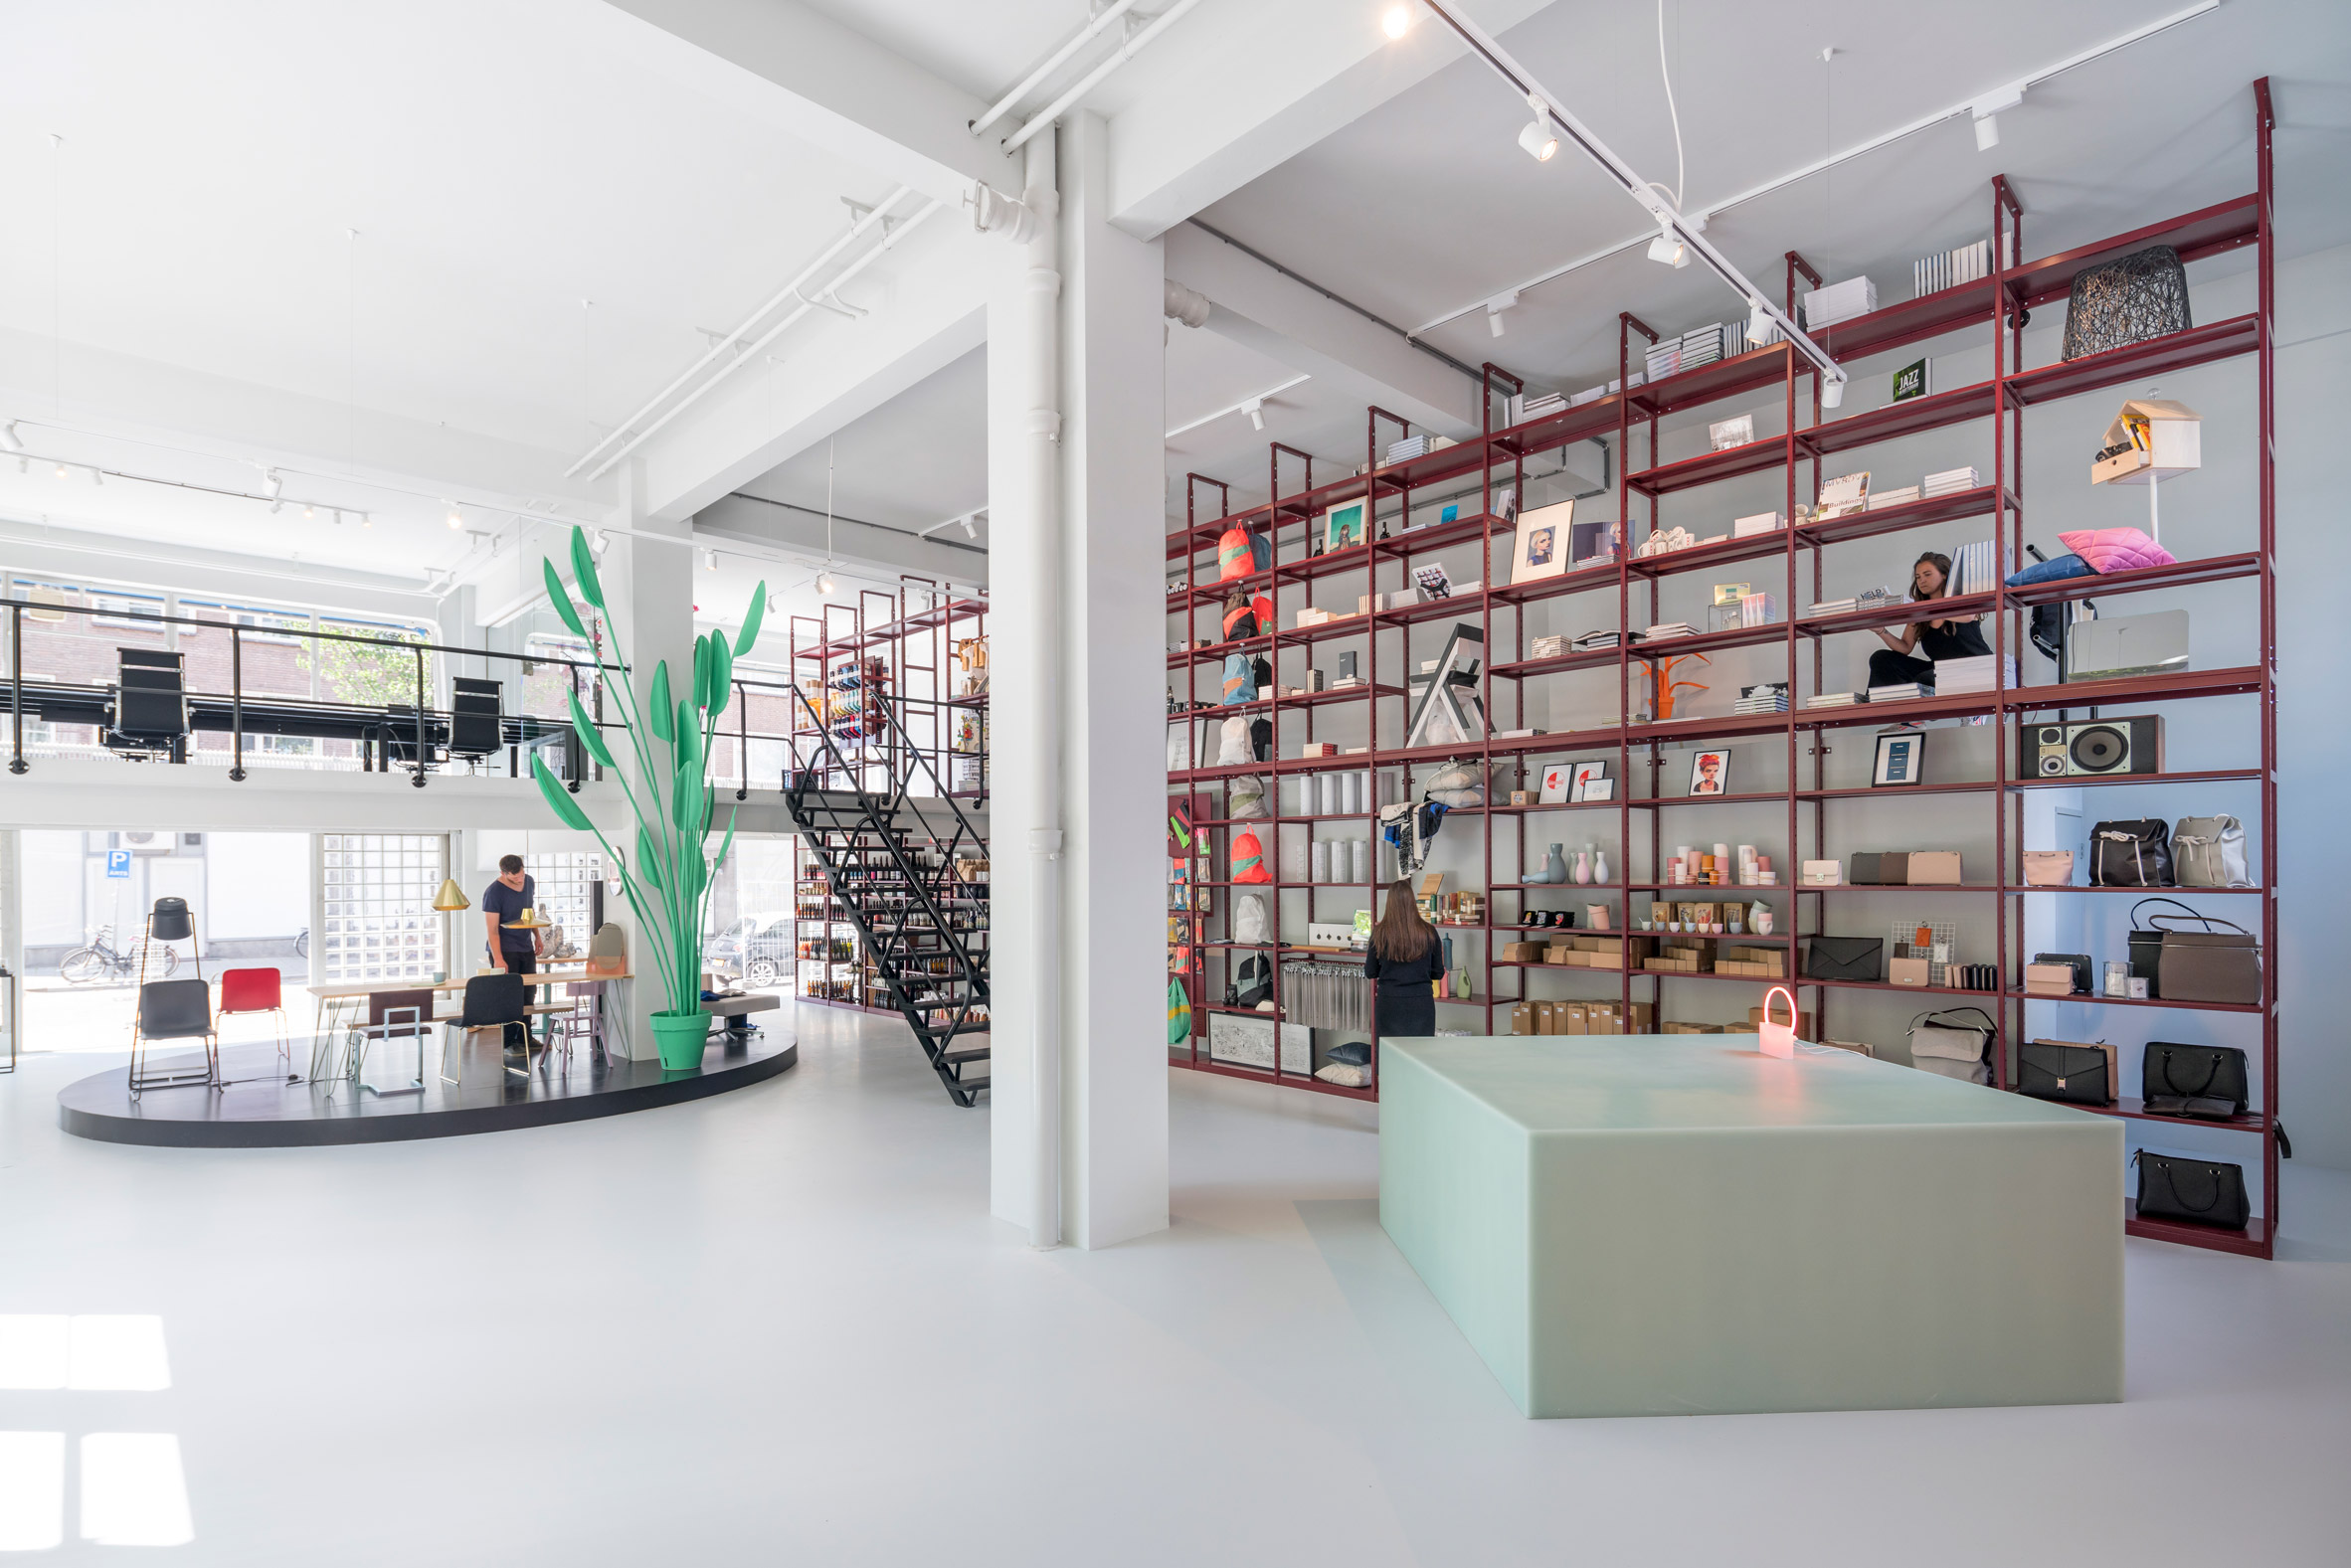 MVRDV creates interiors for Groos store inside post-war Rotterdam building